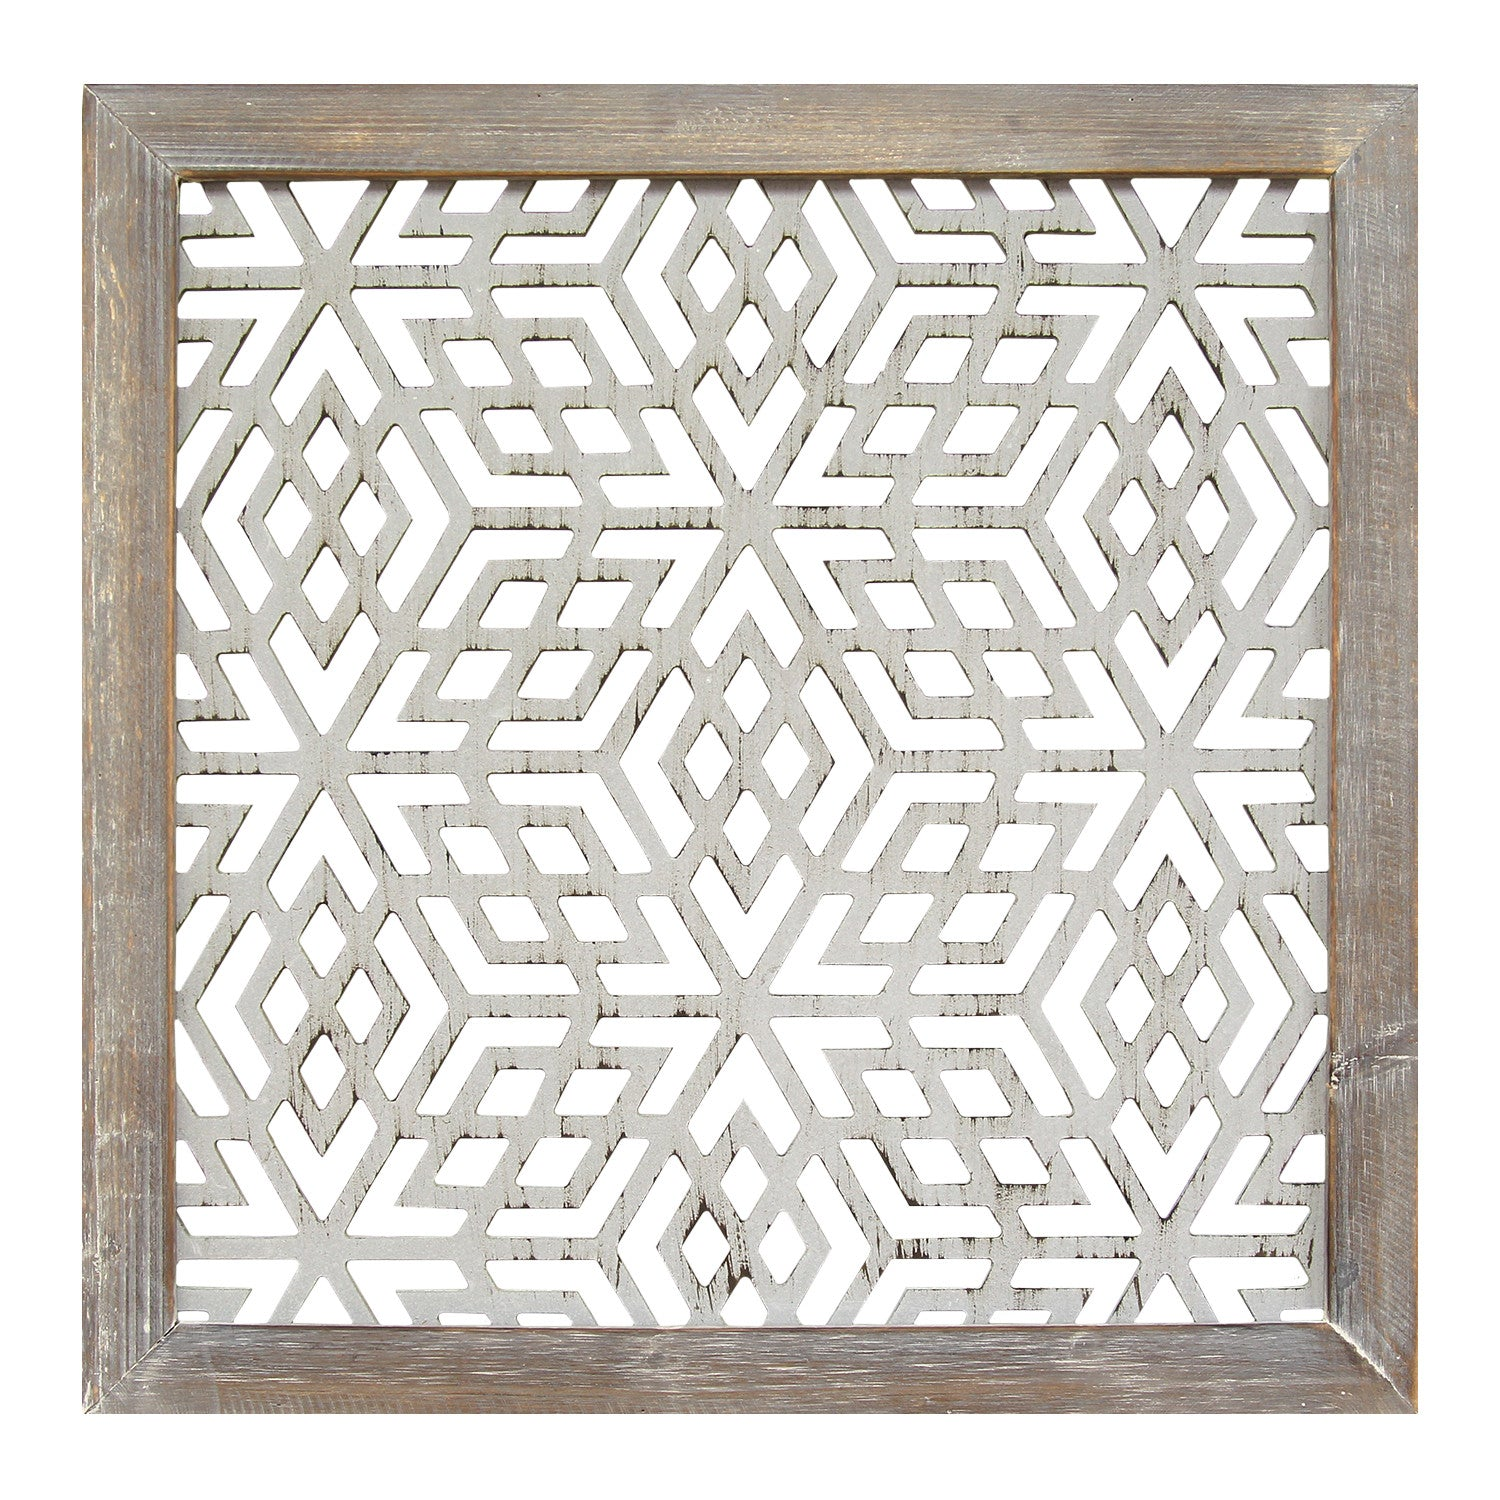 Framed laser cut wall dcor 1pc stratton home decor framed laser cut wall dcor 1pc amipublicfo Choice Image